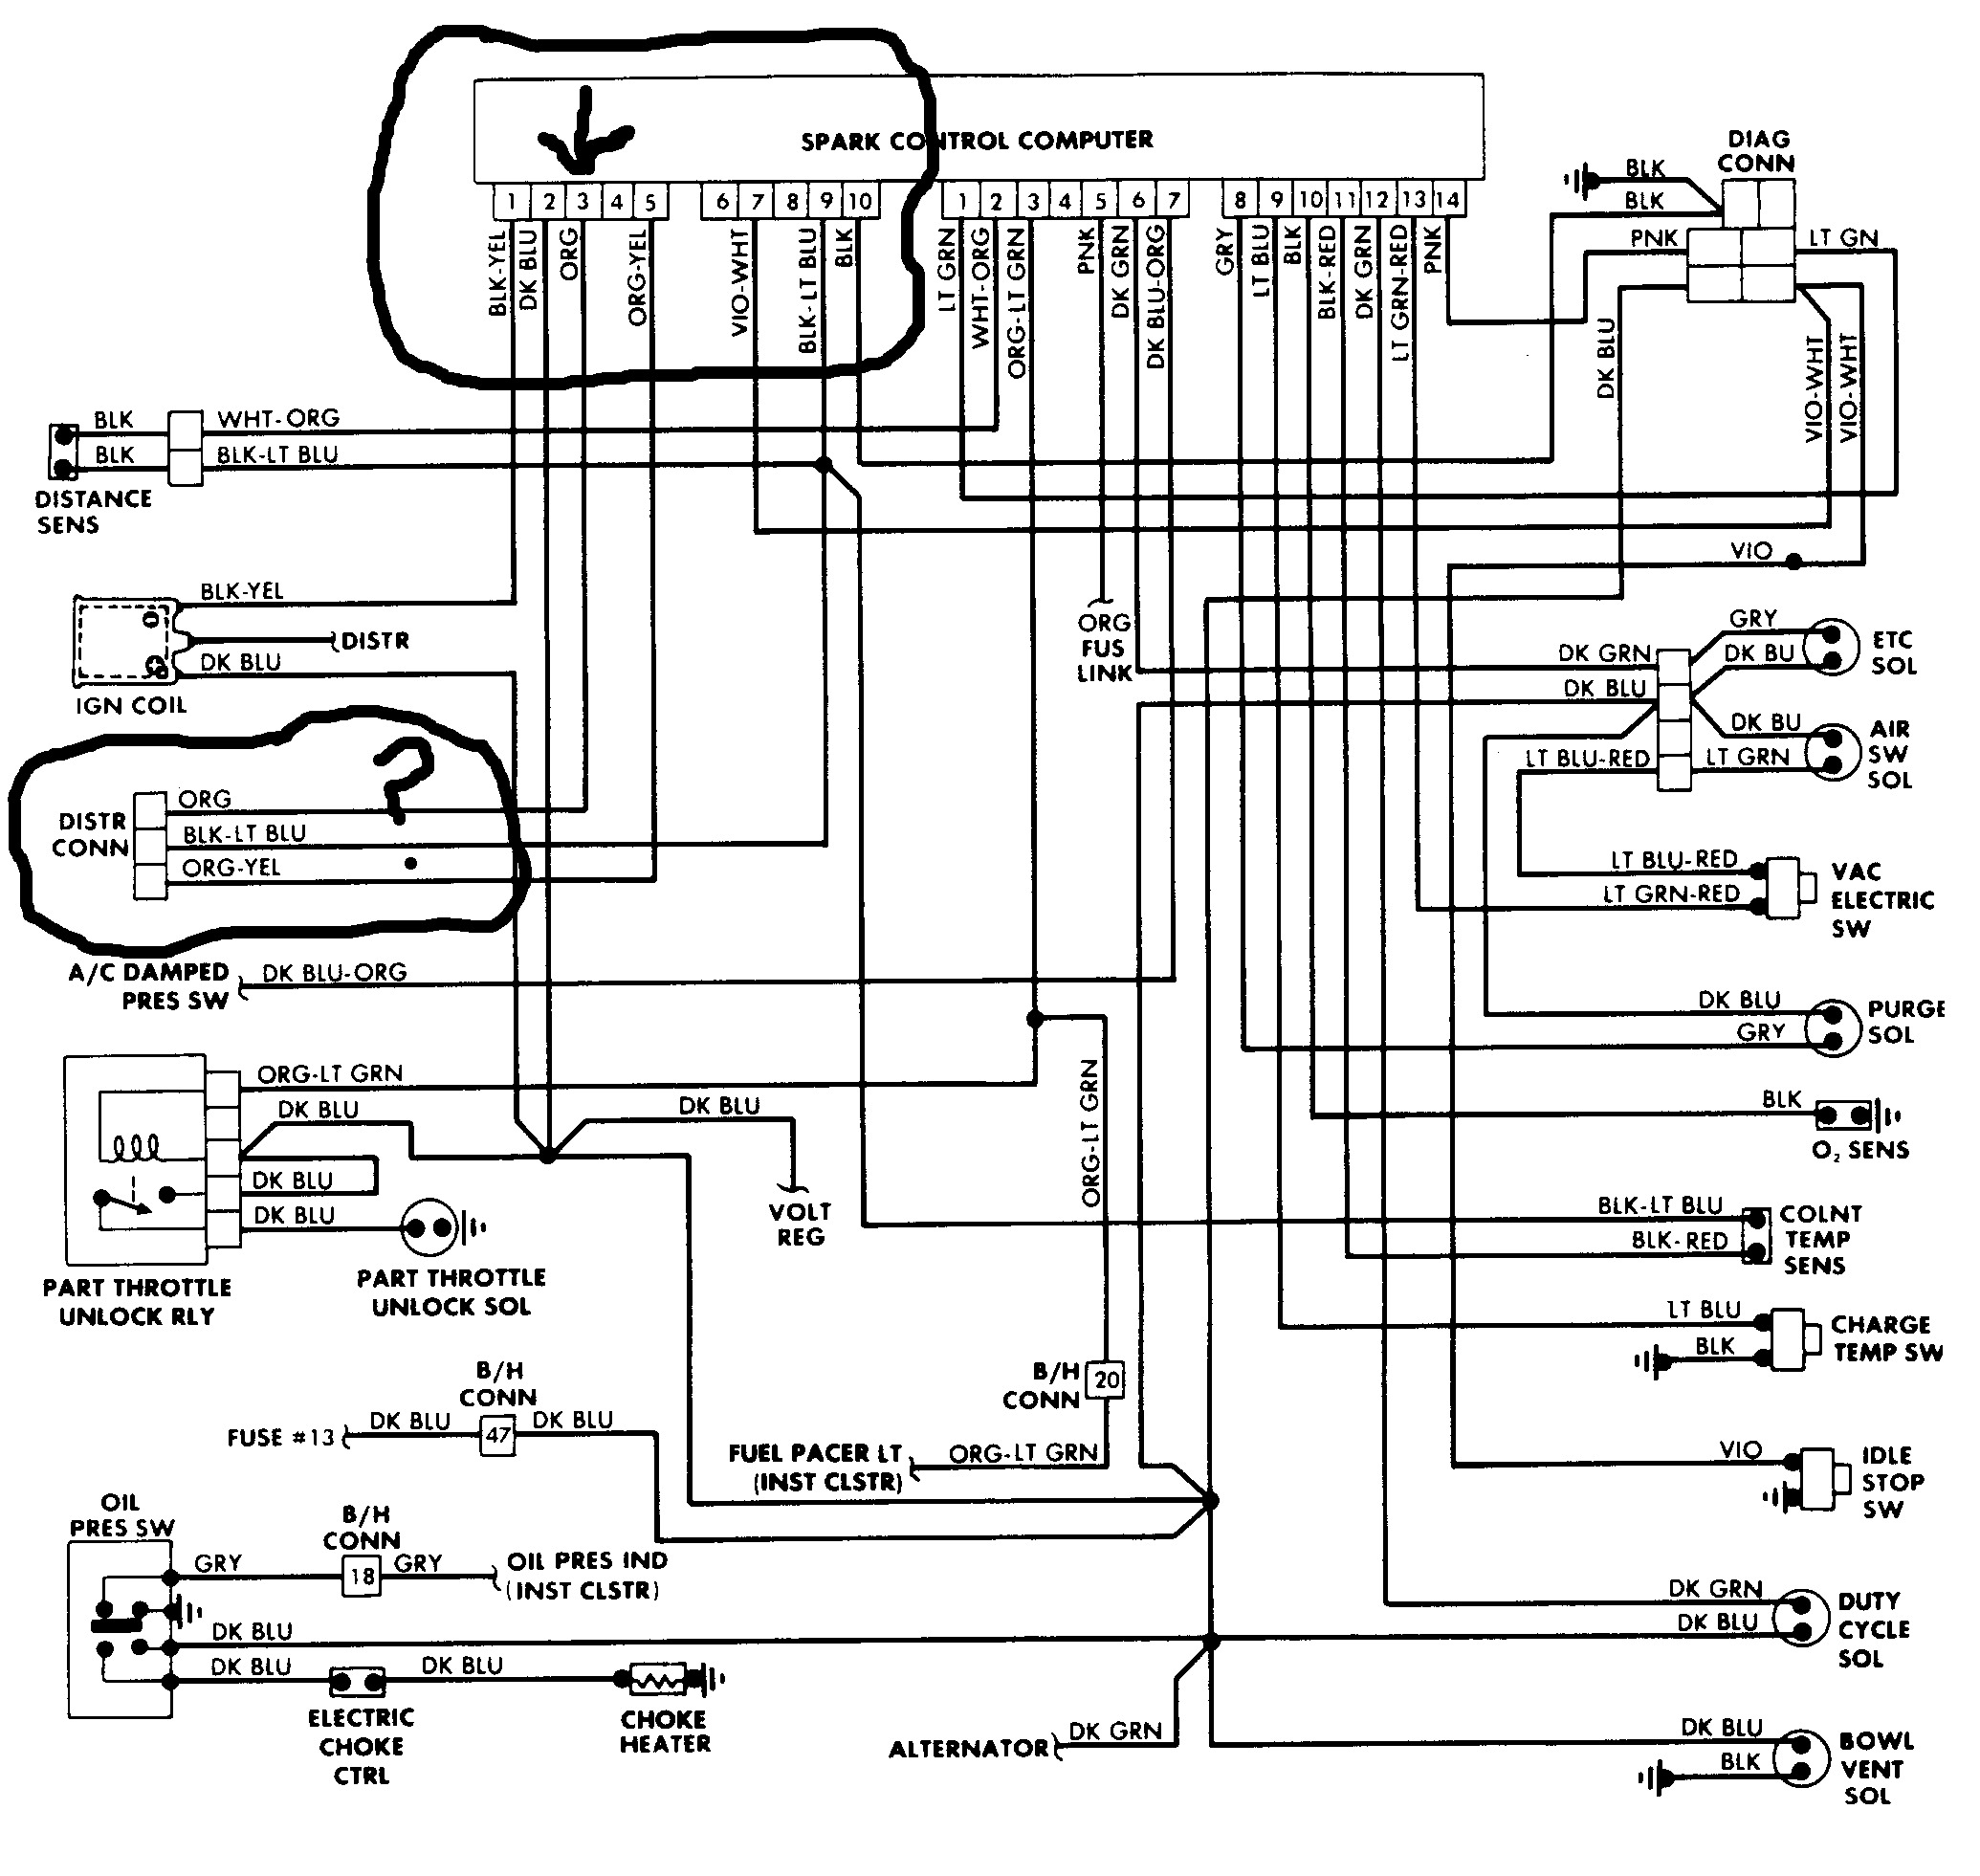 1997 Dodge Dakota Ke Parts Diagram. Dodge. Auto Wiring Diagram